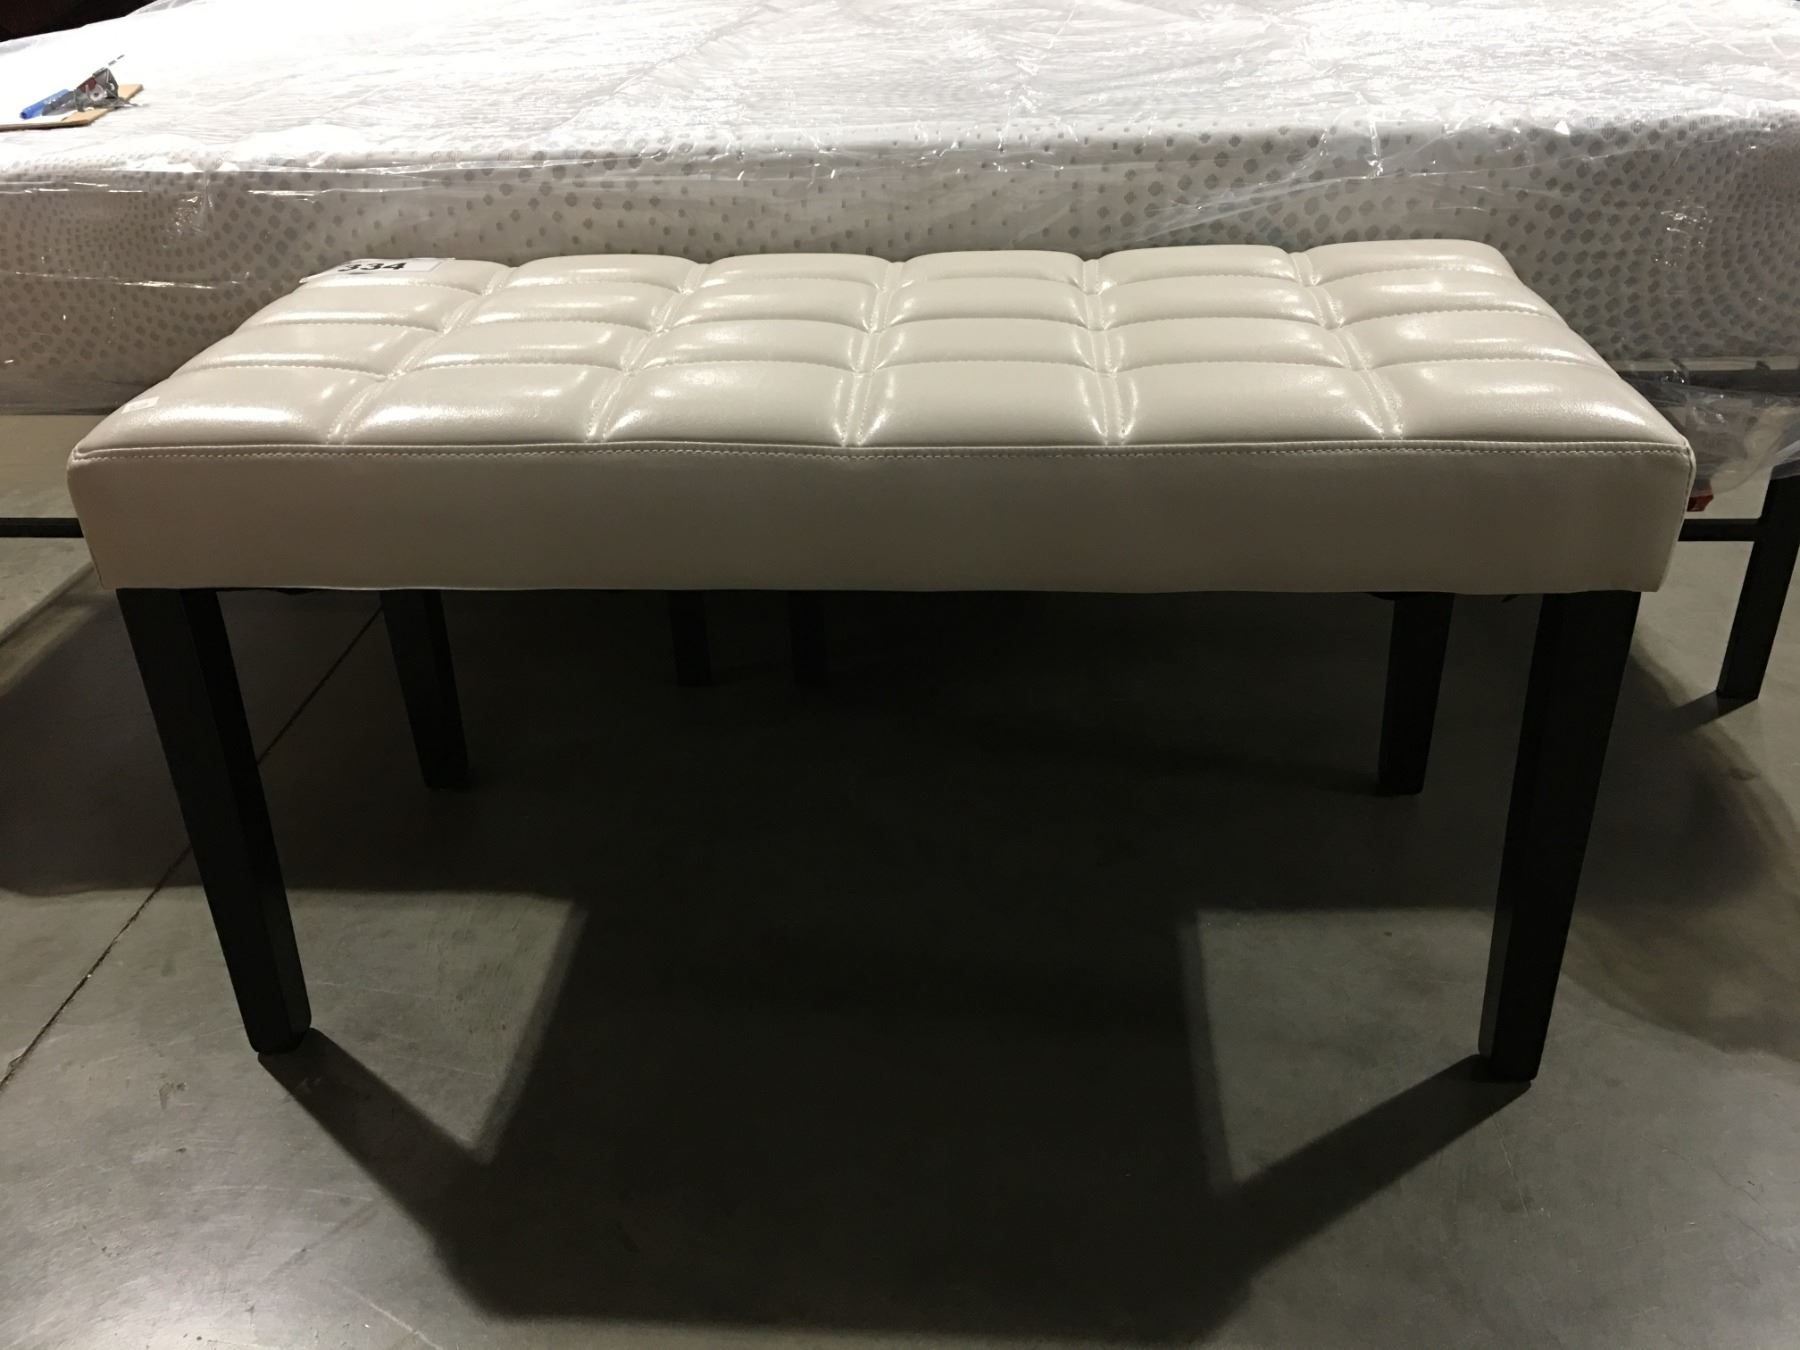 Fine White Leather Upholstered Bench Seat Small Tear On 1 Corner Cjindustries Chair Design For Home Cjindustriesco